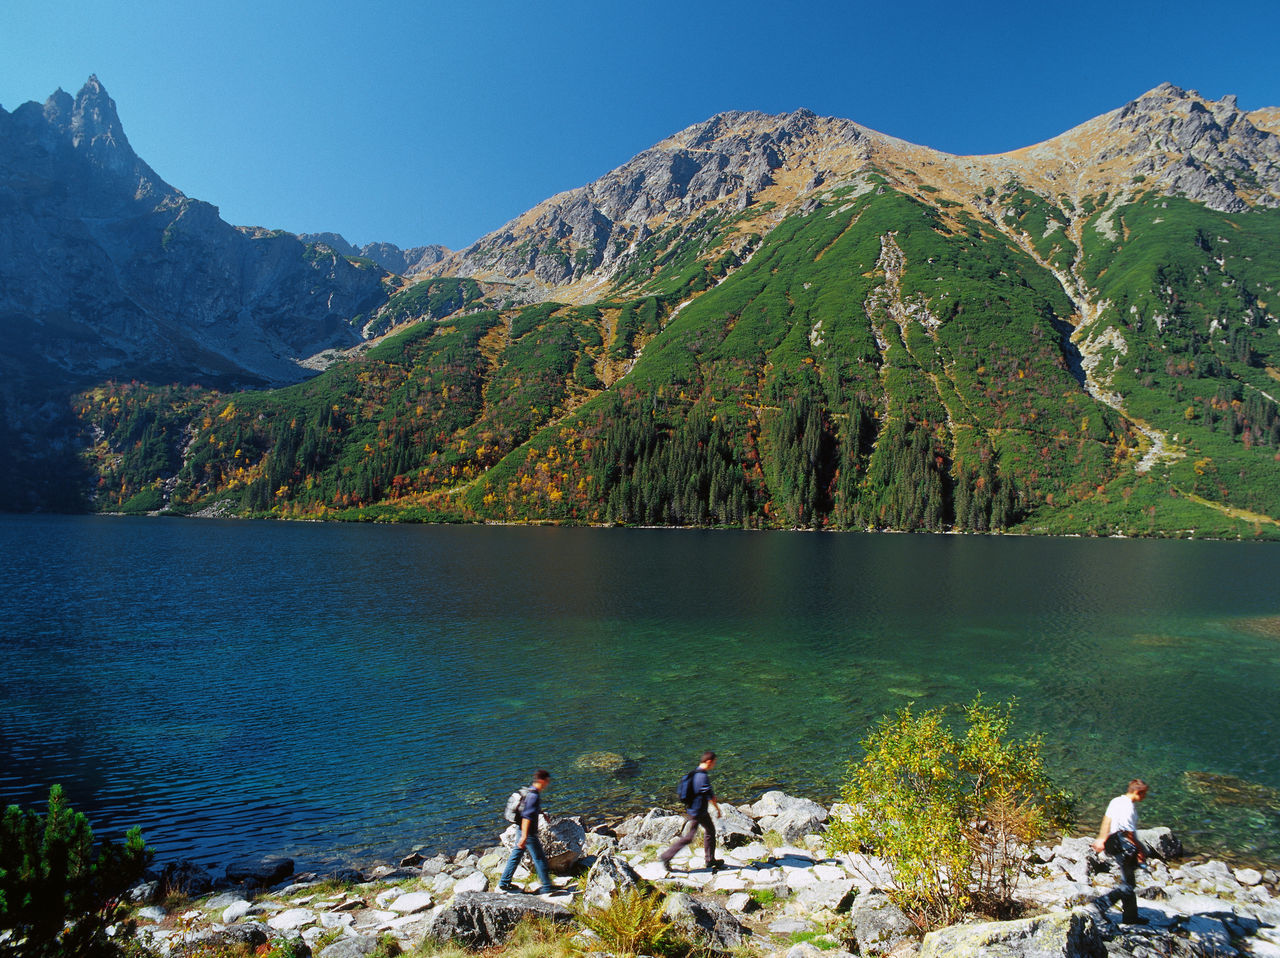 Autumn Beauty In Nature Lake Landscape Morskie Oko Morskie Oko Morskieoko Mountain Mountain Lake Mountain Landscape Mountain Range Mountains Nature Outdoors People Scenics Tatry Tatrymountains Tourism Tourist Travel Destinations Water